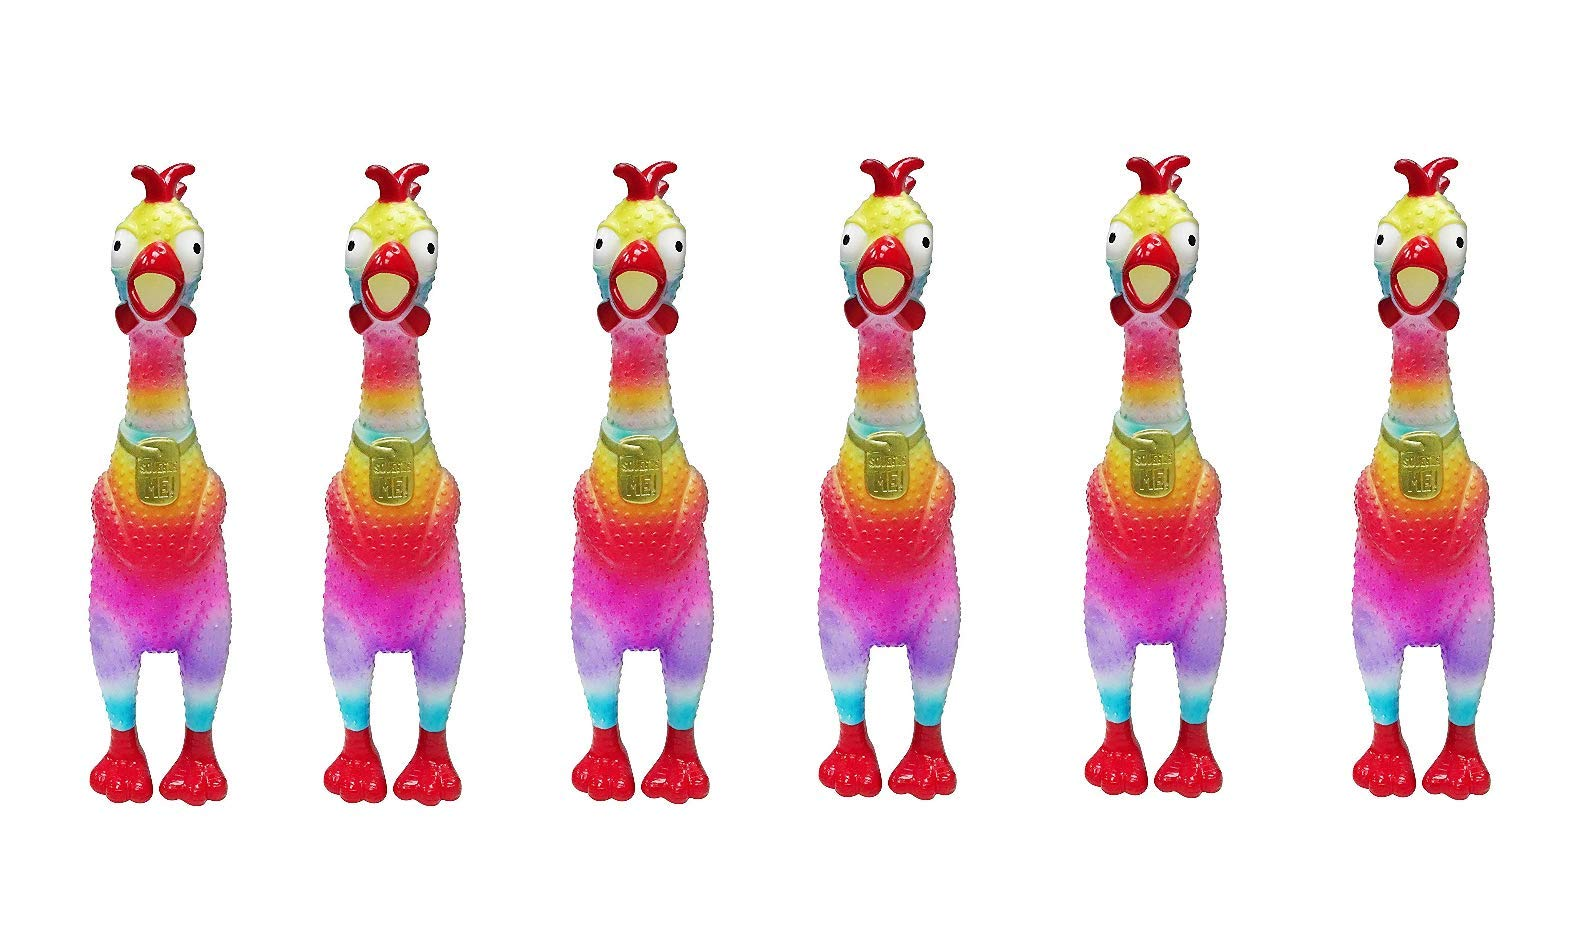 Animolds XL Tie Dye Screaming Chicken Non Toxic Rubber Chicken Toy Best Chicken Toys for Kids and Adults Party Value Pack (6-Pack) by Animolds